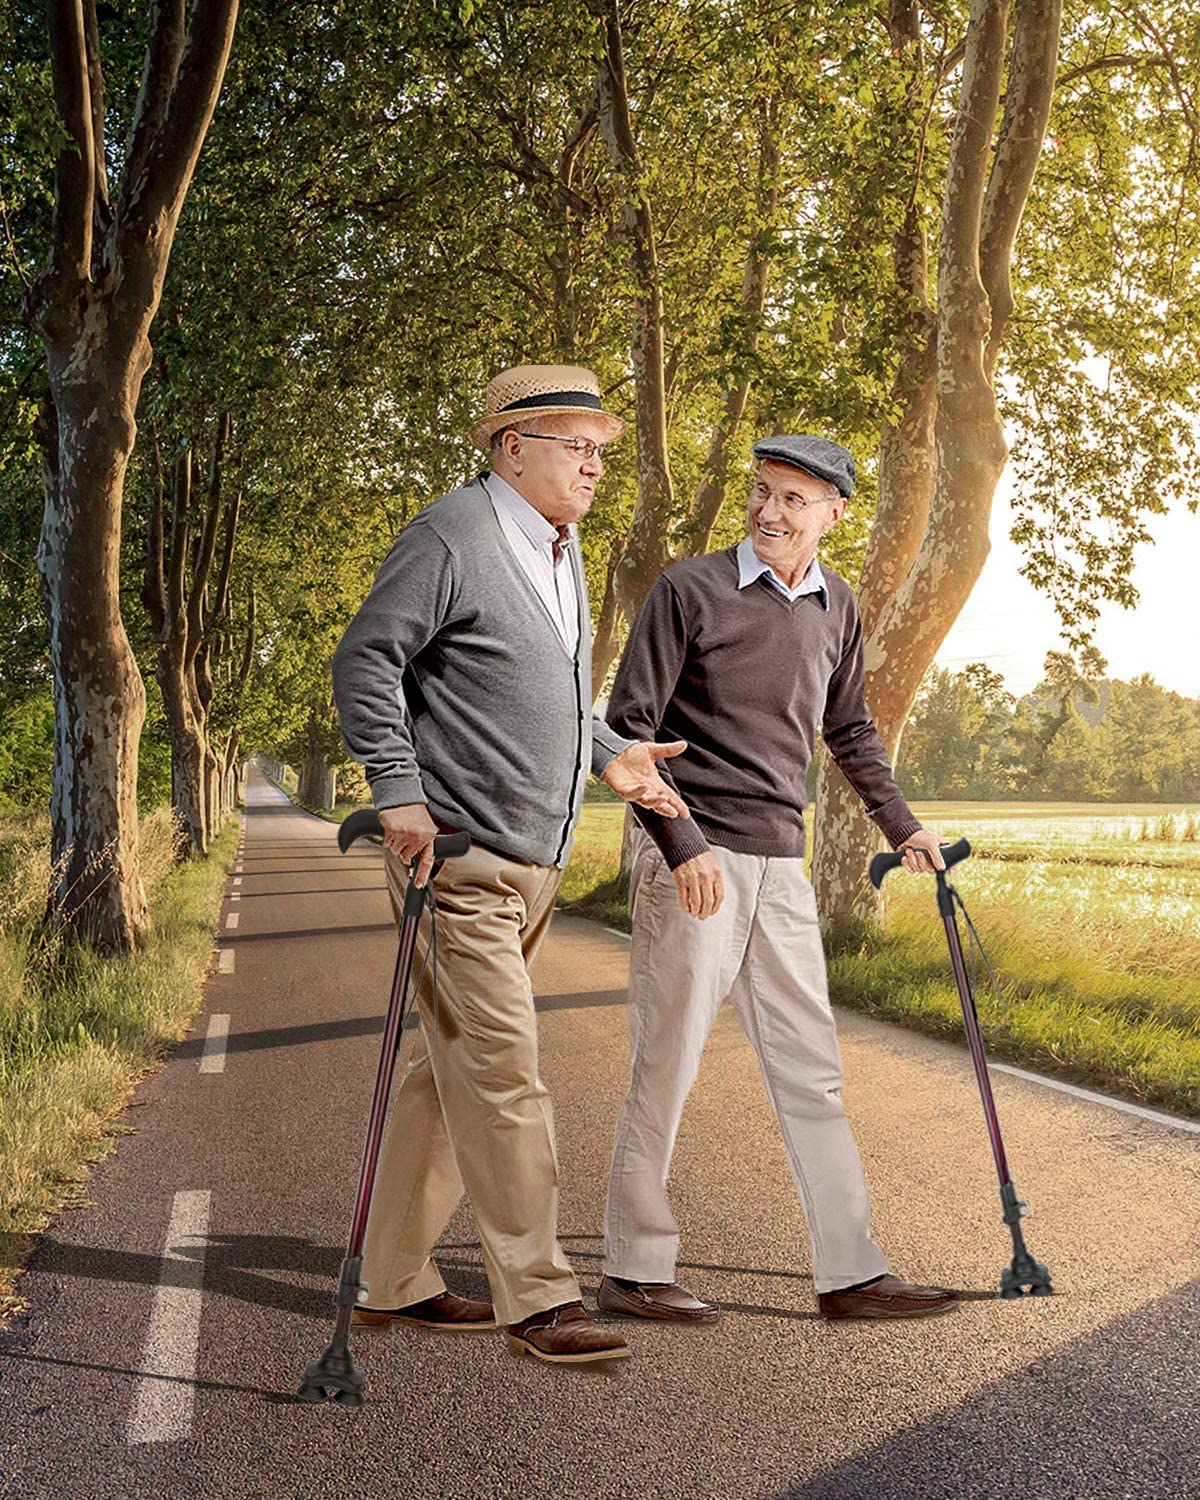 BERSERKER OUTDOOR Adjustable Carbon Fiber Walking Cane for Men and Women Lightweigh Walking Stick with Soft Touch Handle Portable Sturdy Self Standing Cane with Wrist Strap for Seniors Elderly